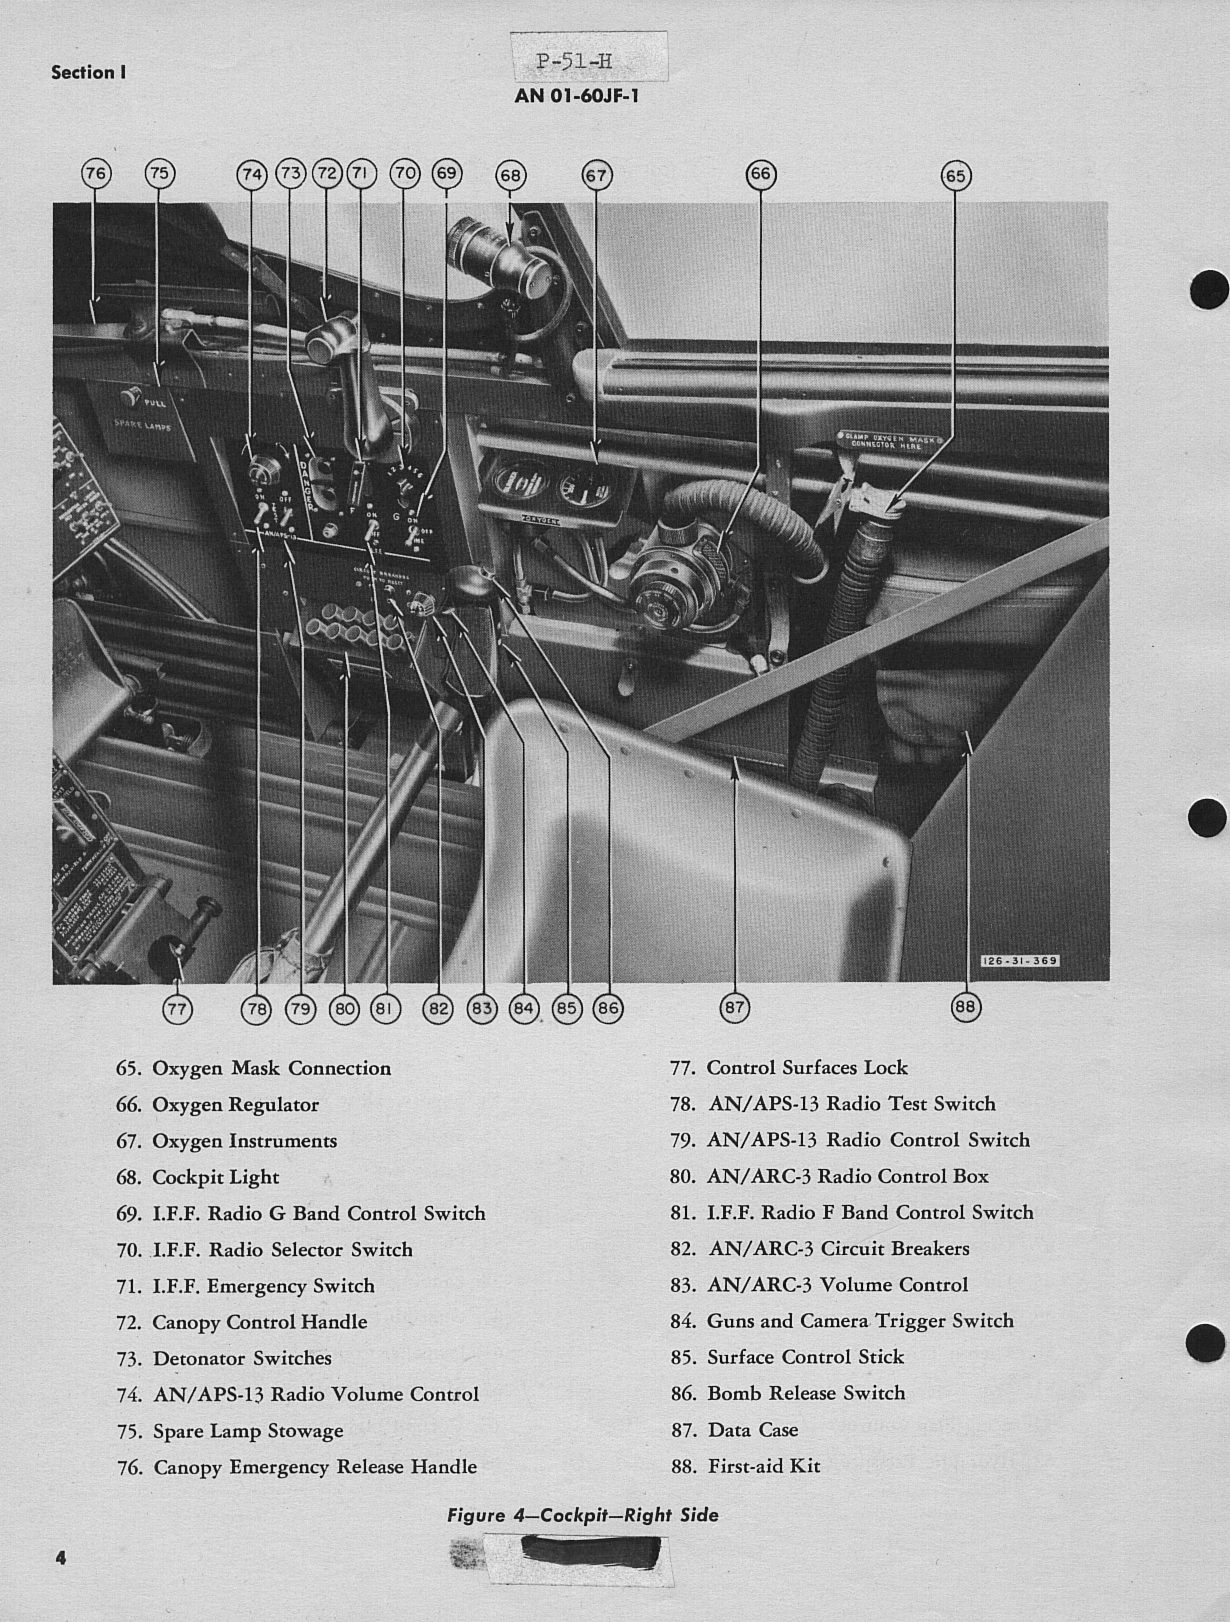 Sample page 8 from AirCorps Library document: Pilot's Handbook for P-51H-1, -5, and -10 Airplanes